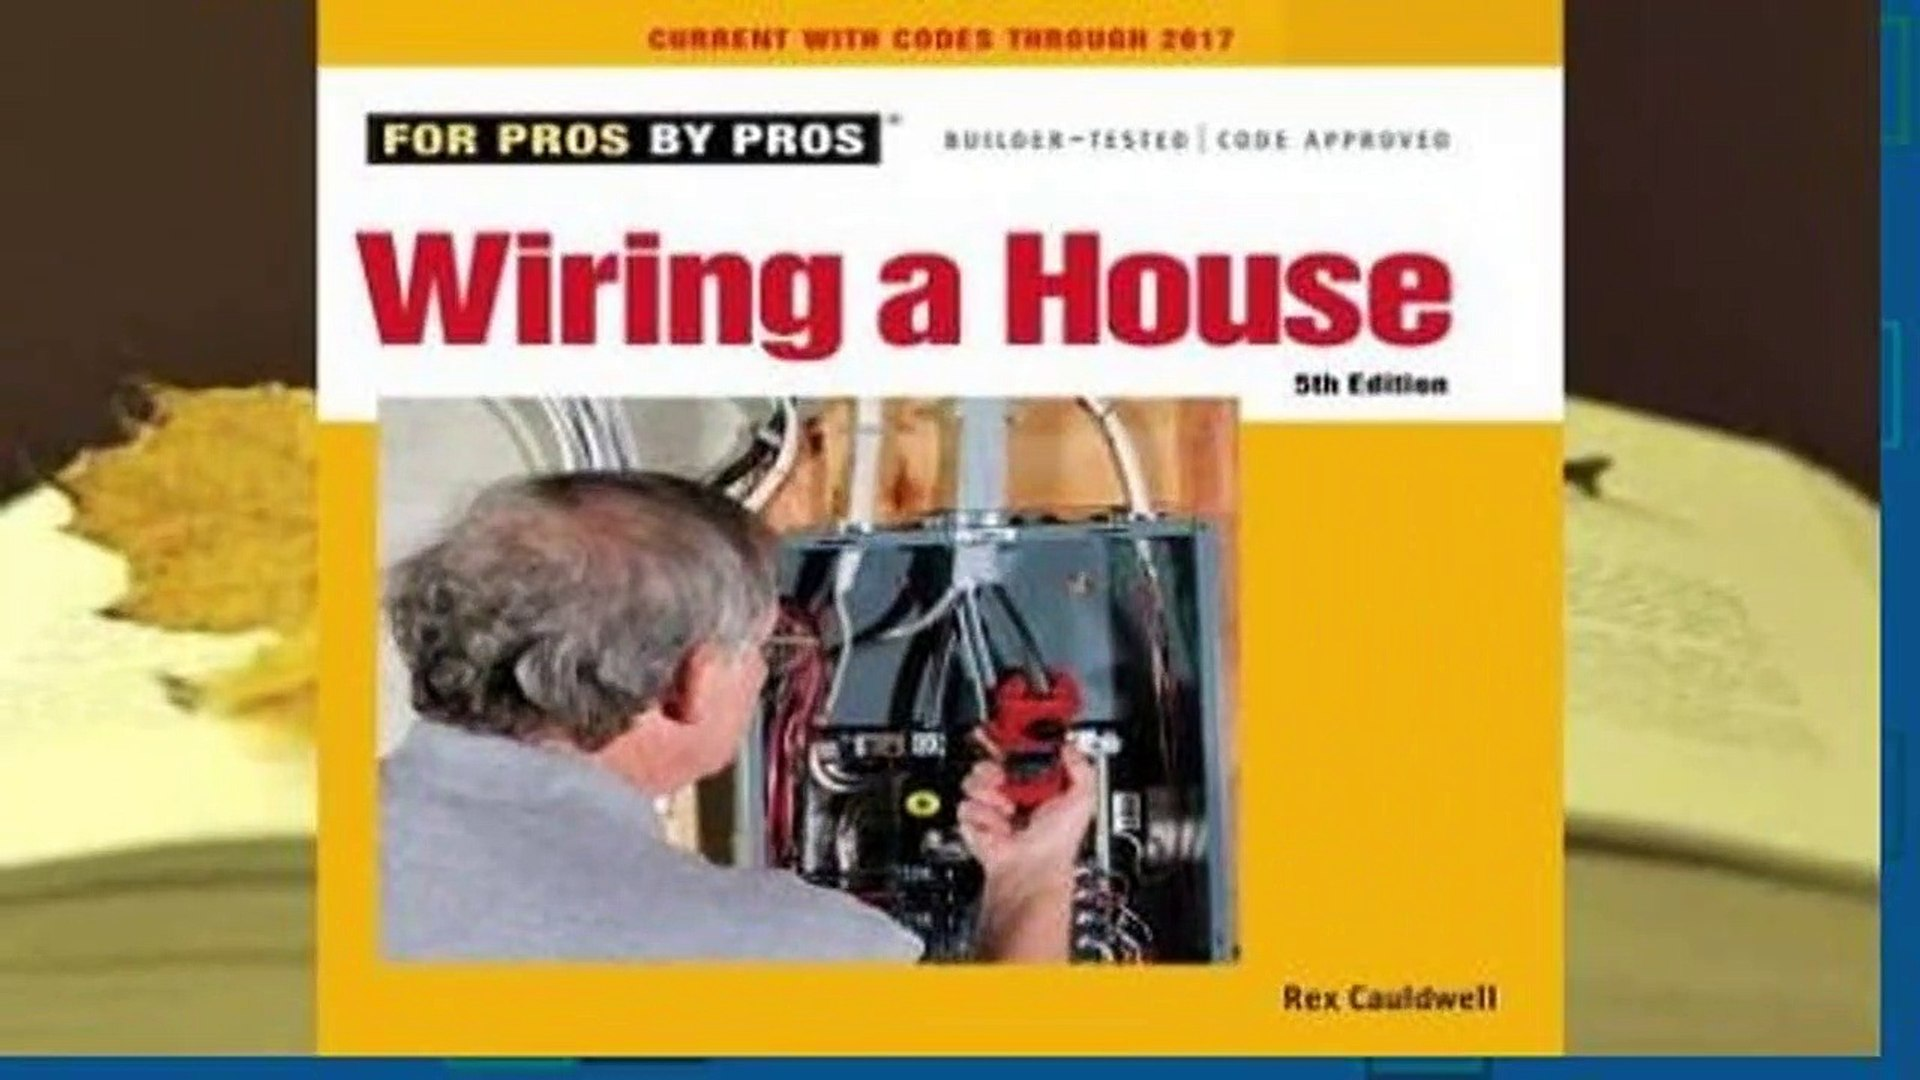 online wiring a house 5th edition for kindle video  wiring a house 5th edition (for pros